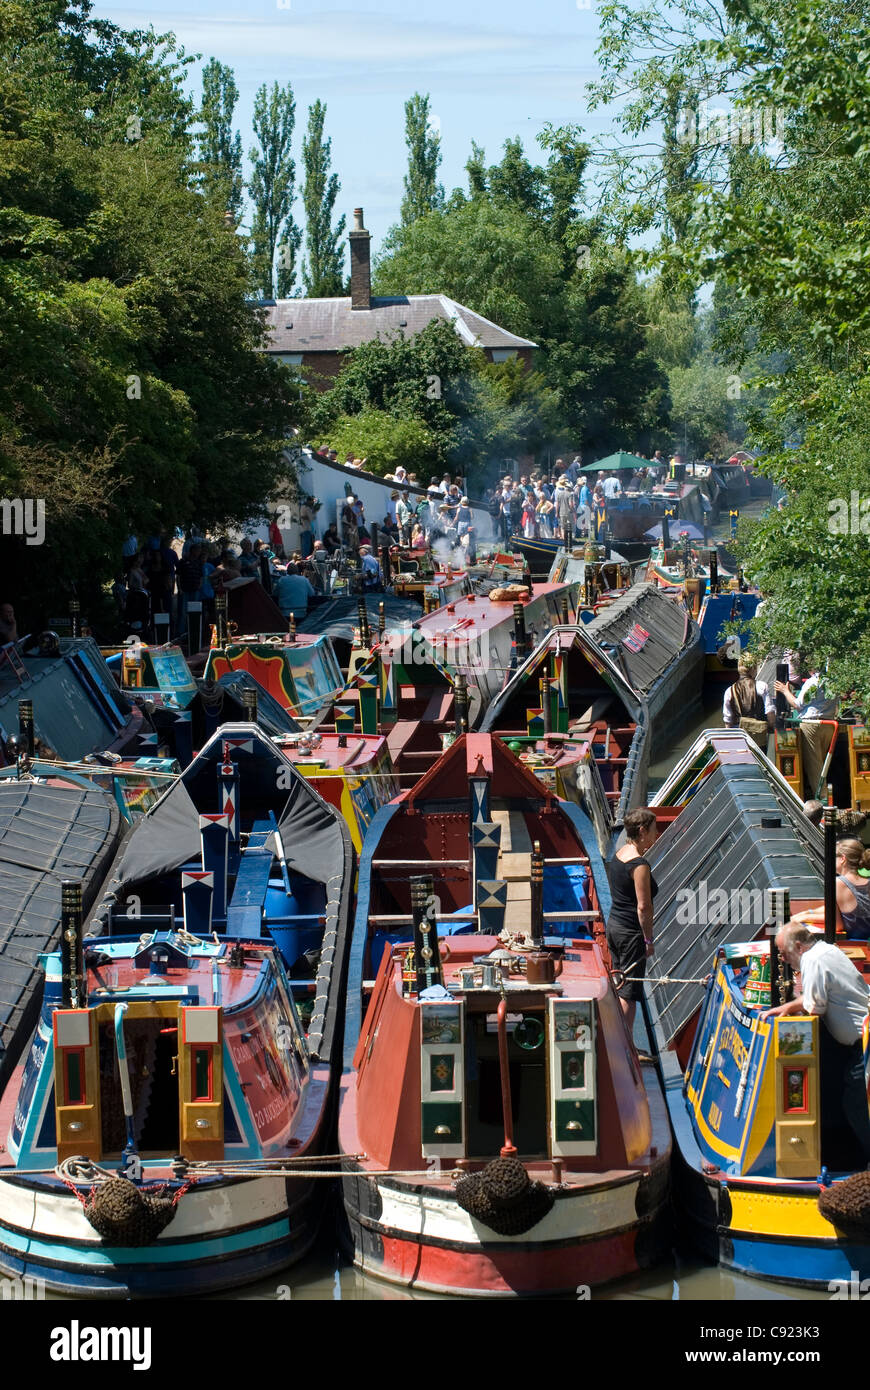 Grand Union Canal. Narrowboats moored during the Braunston Historic Narrowboat Rally 2011. - Stock Image